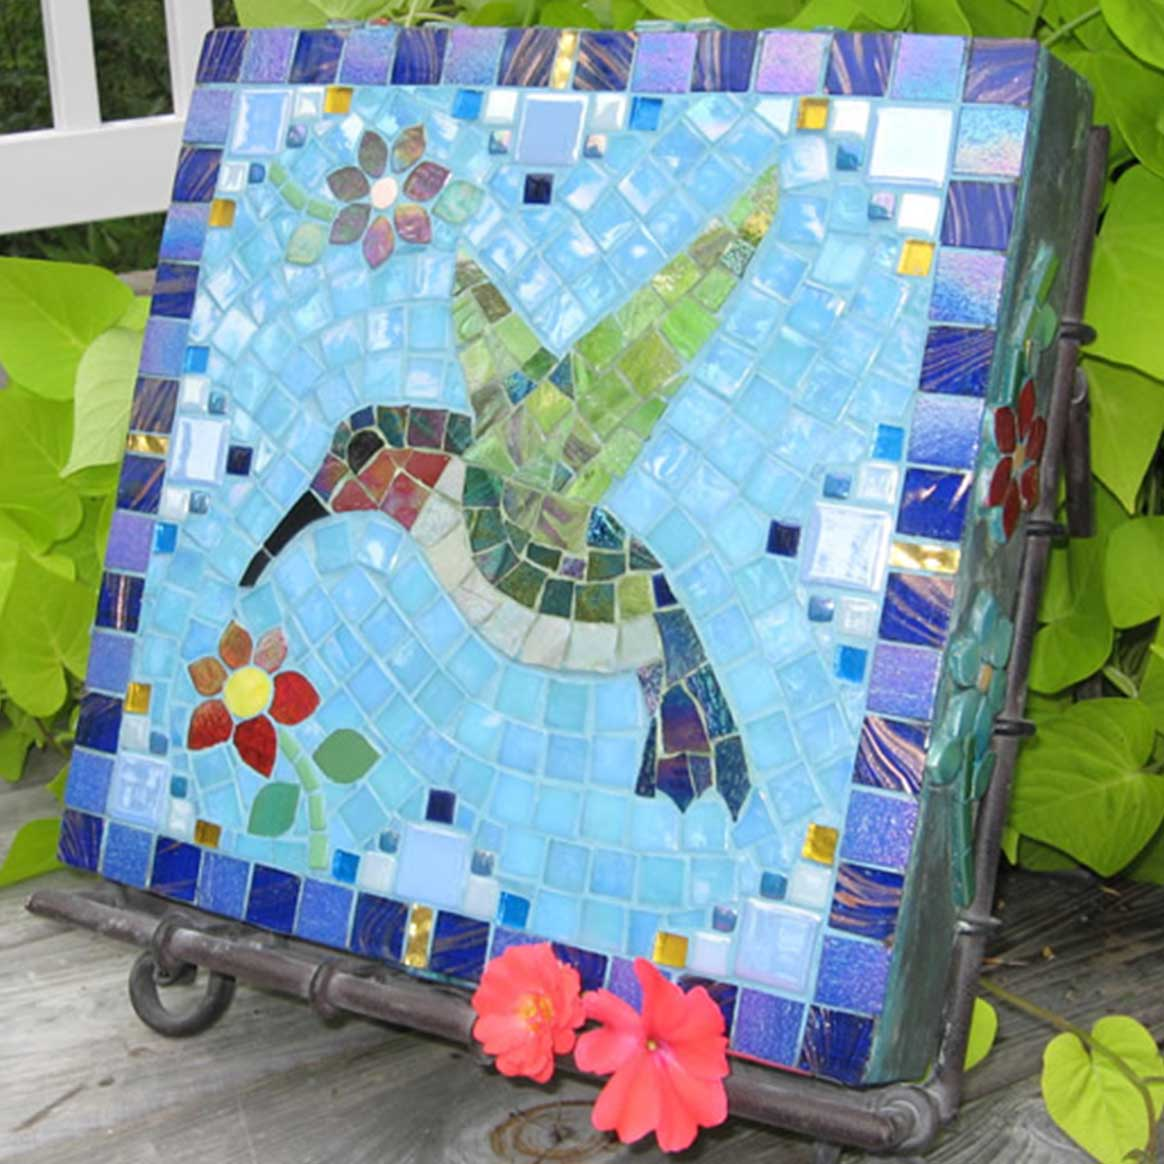 Mosaic Memorial Garden Art Stone of Dianne's Hummingbird by Water's End Studio Artist Linda Solby